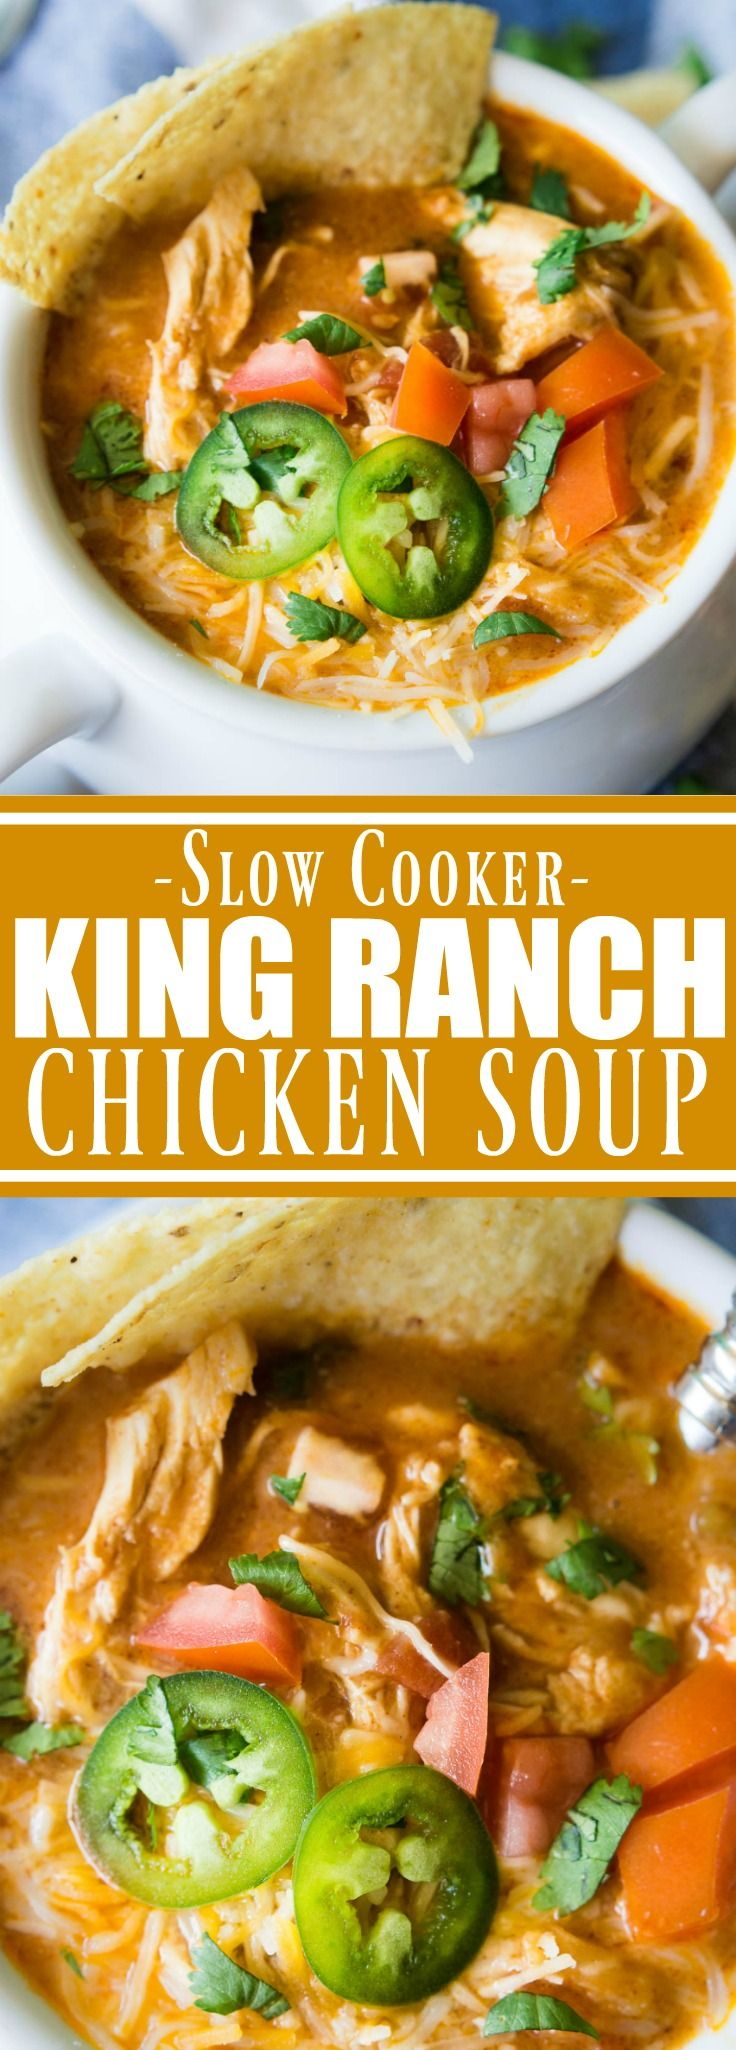 This EASY creamy soup tastes just like the beloved King Ranch Chicken Casserole. Loaded with cheese, juicy chunks of chicken, and